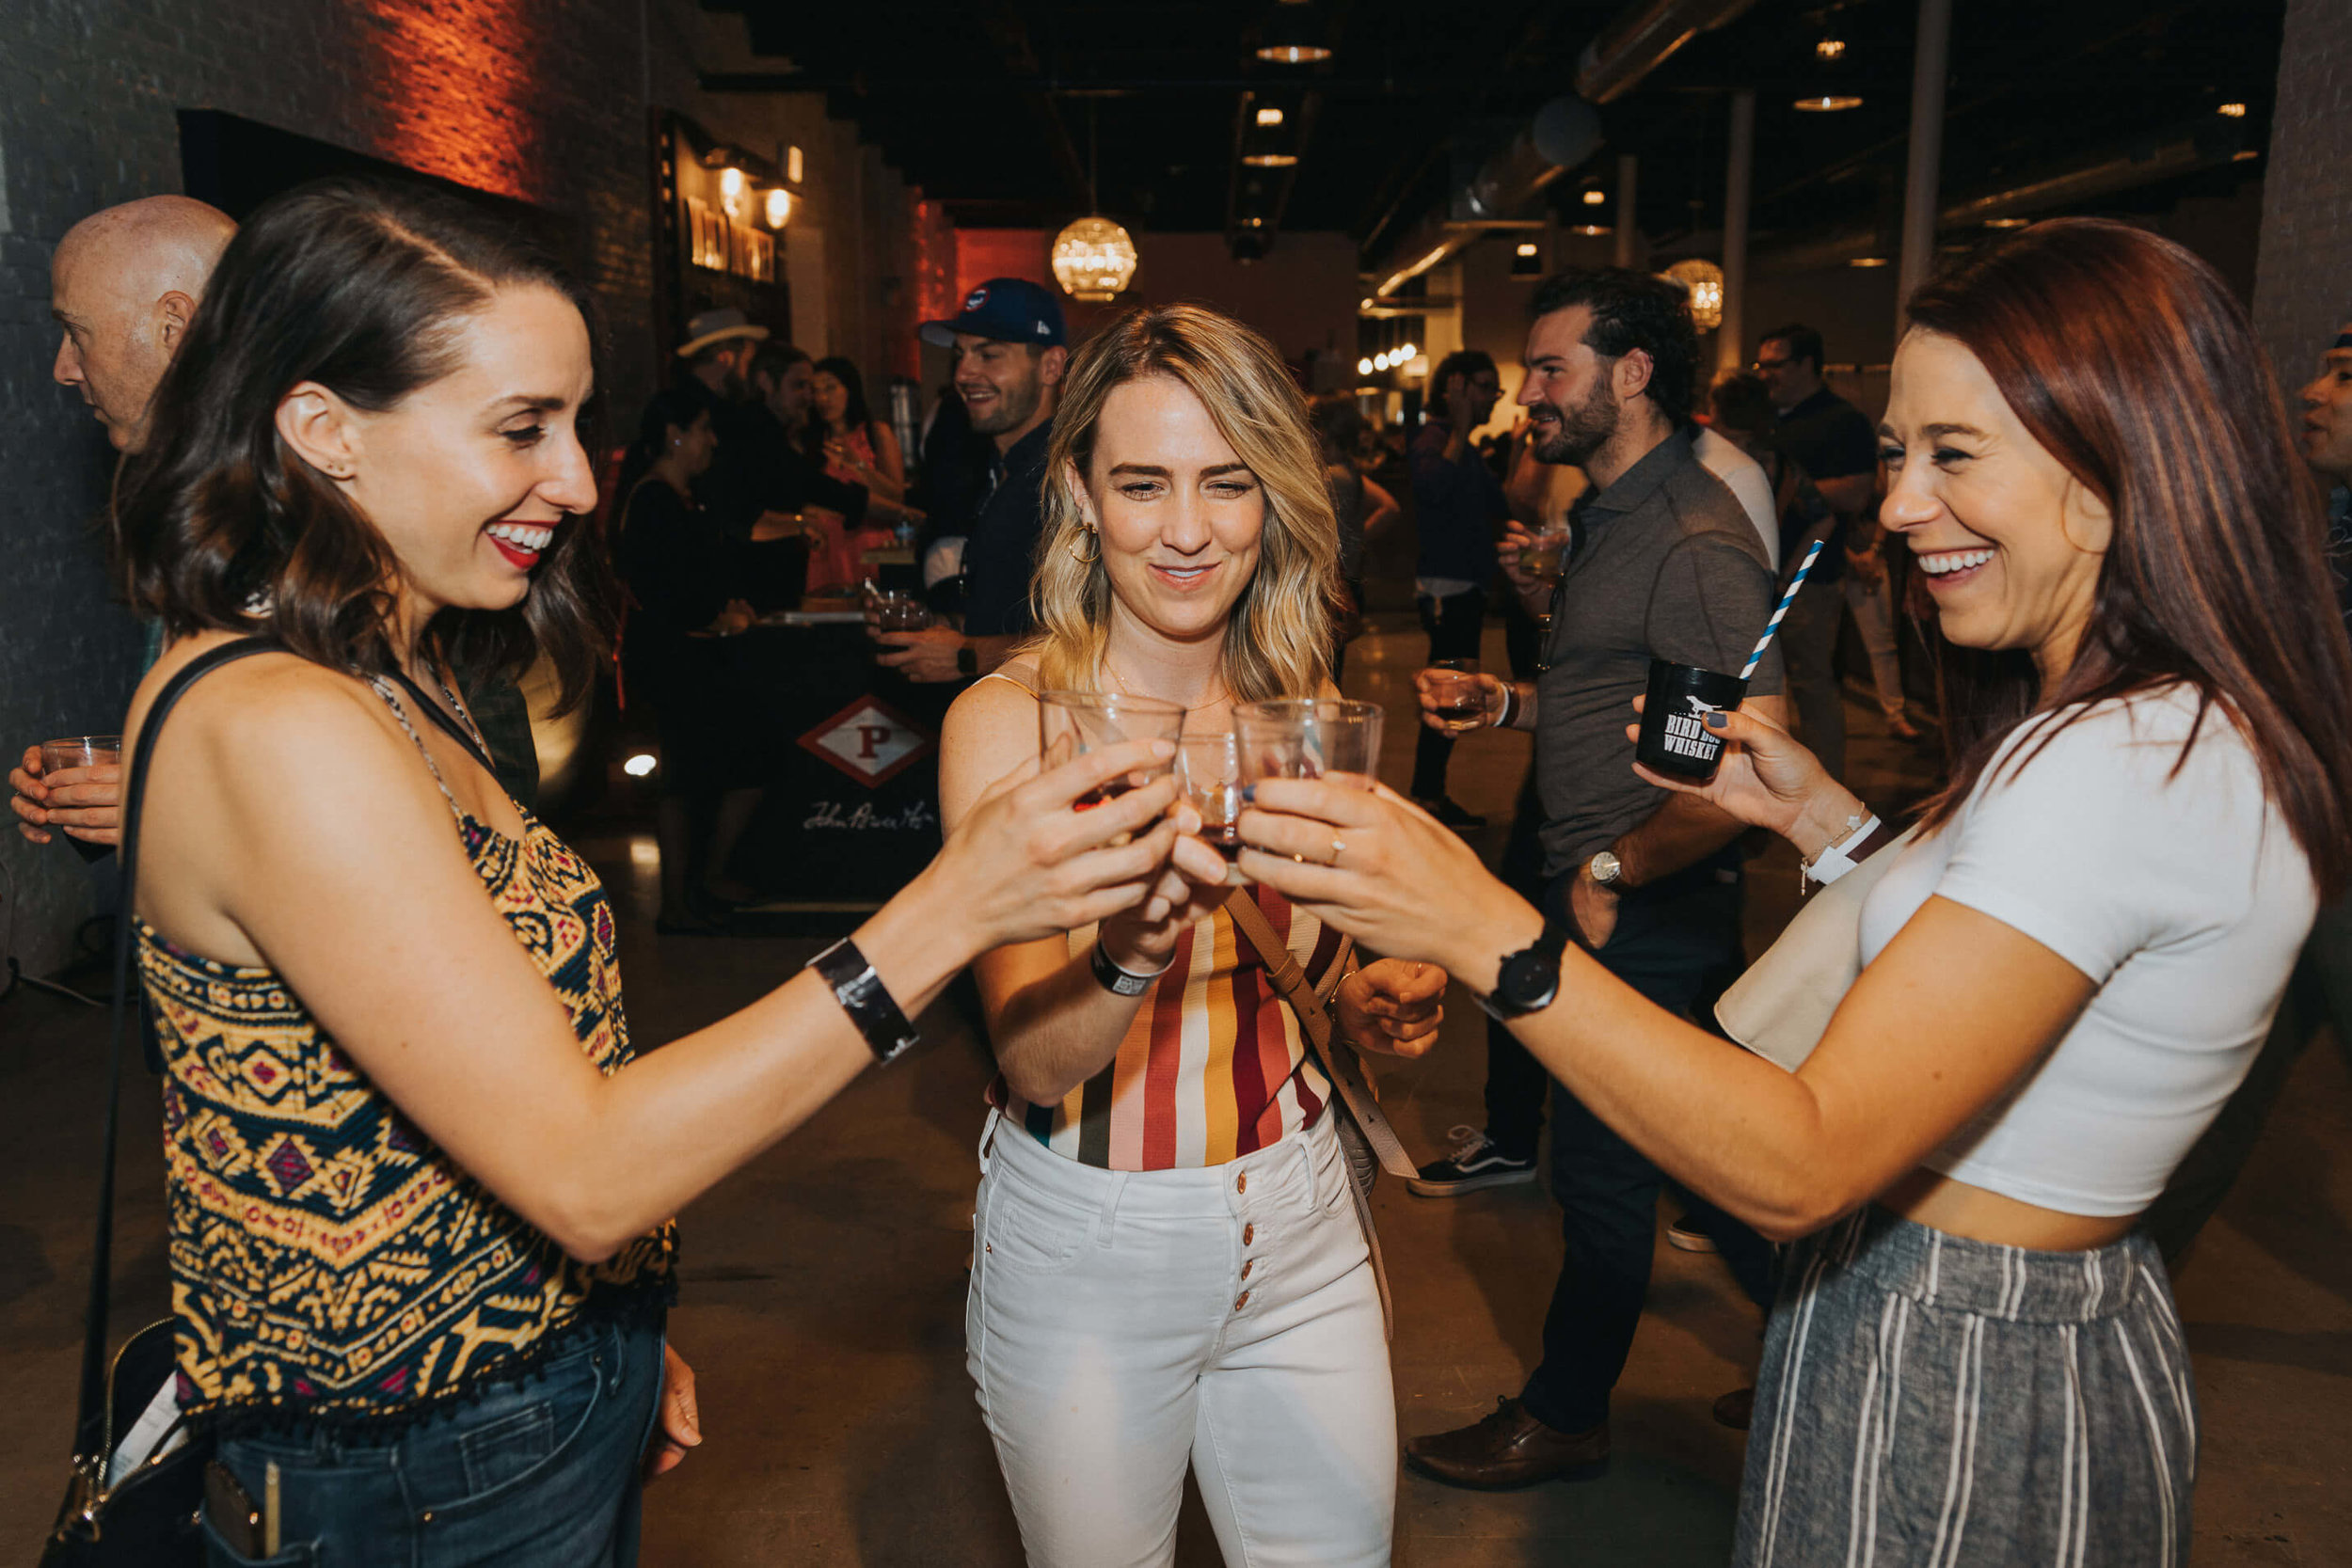 Chicago Event Photography_The Whisky X @ Revel_04.jpg